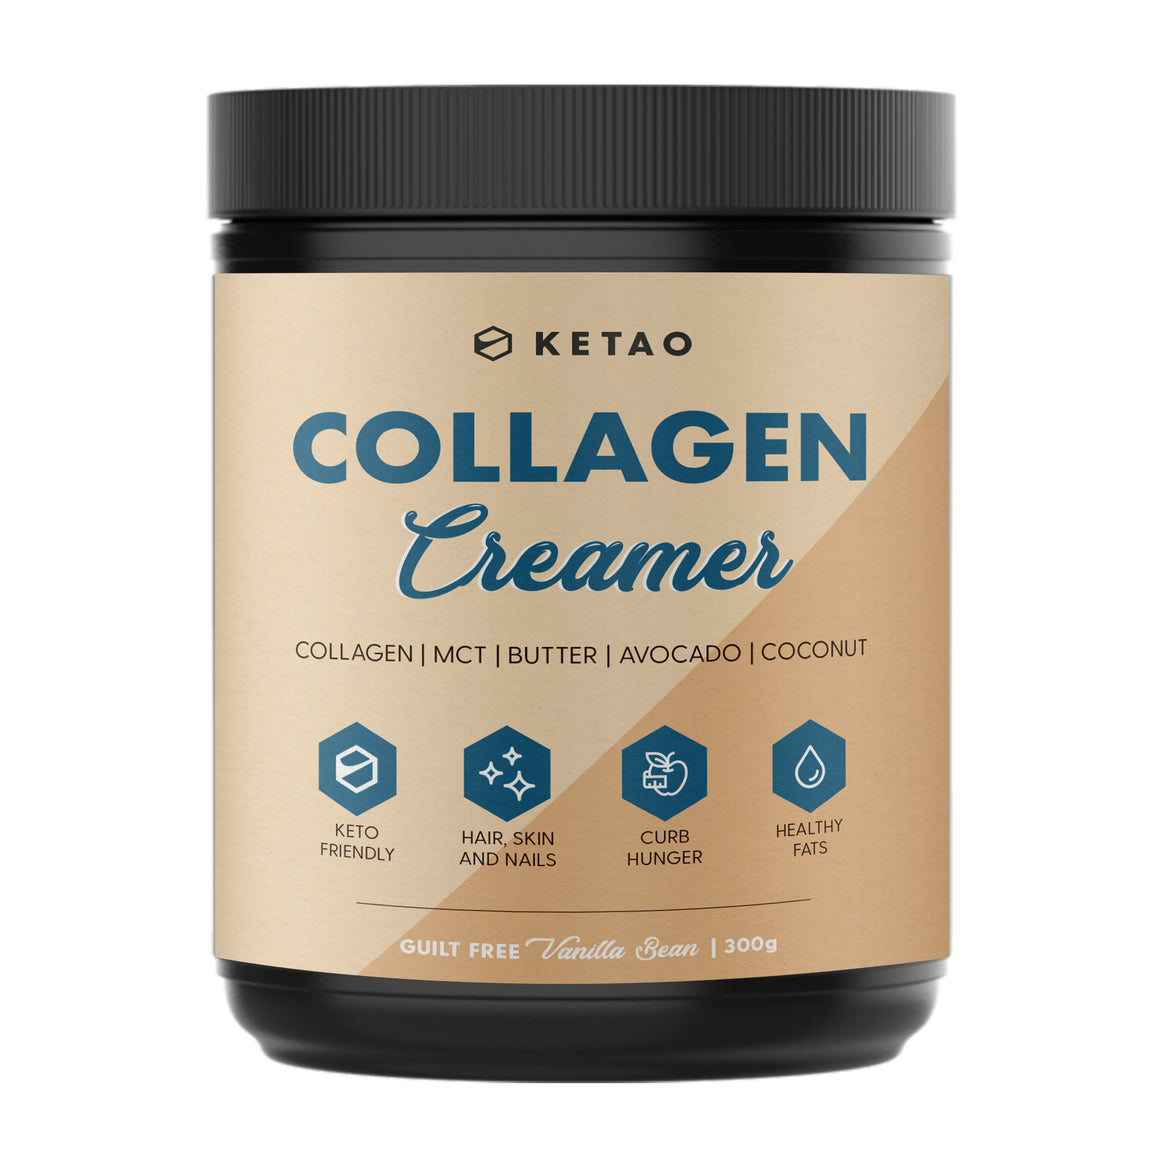 Collagen Creamer - Keto friendly delicious creamer